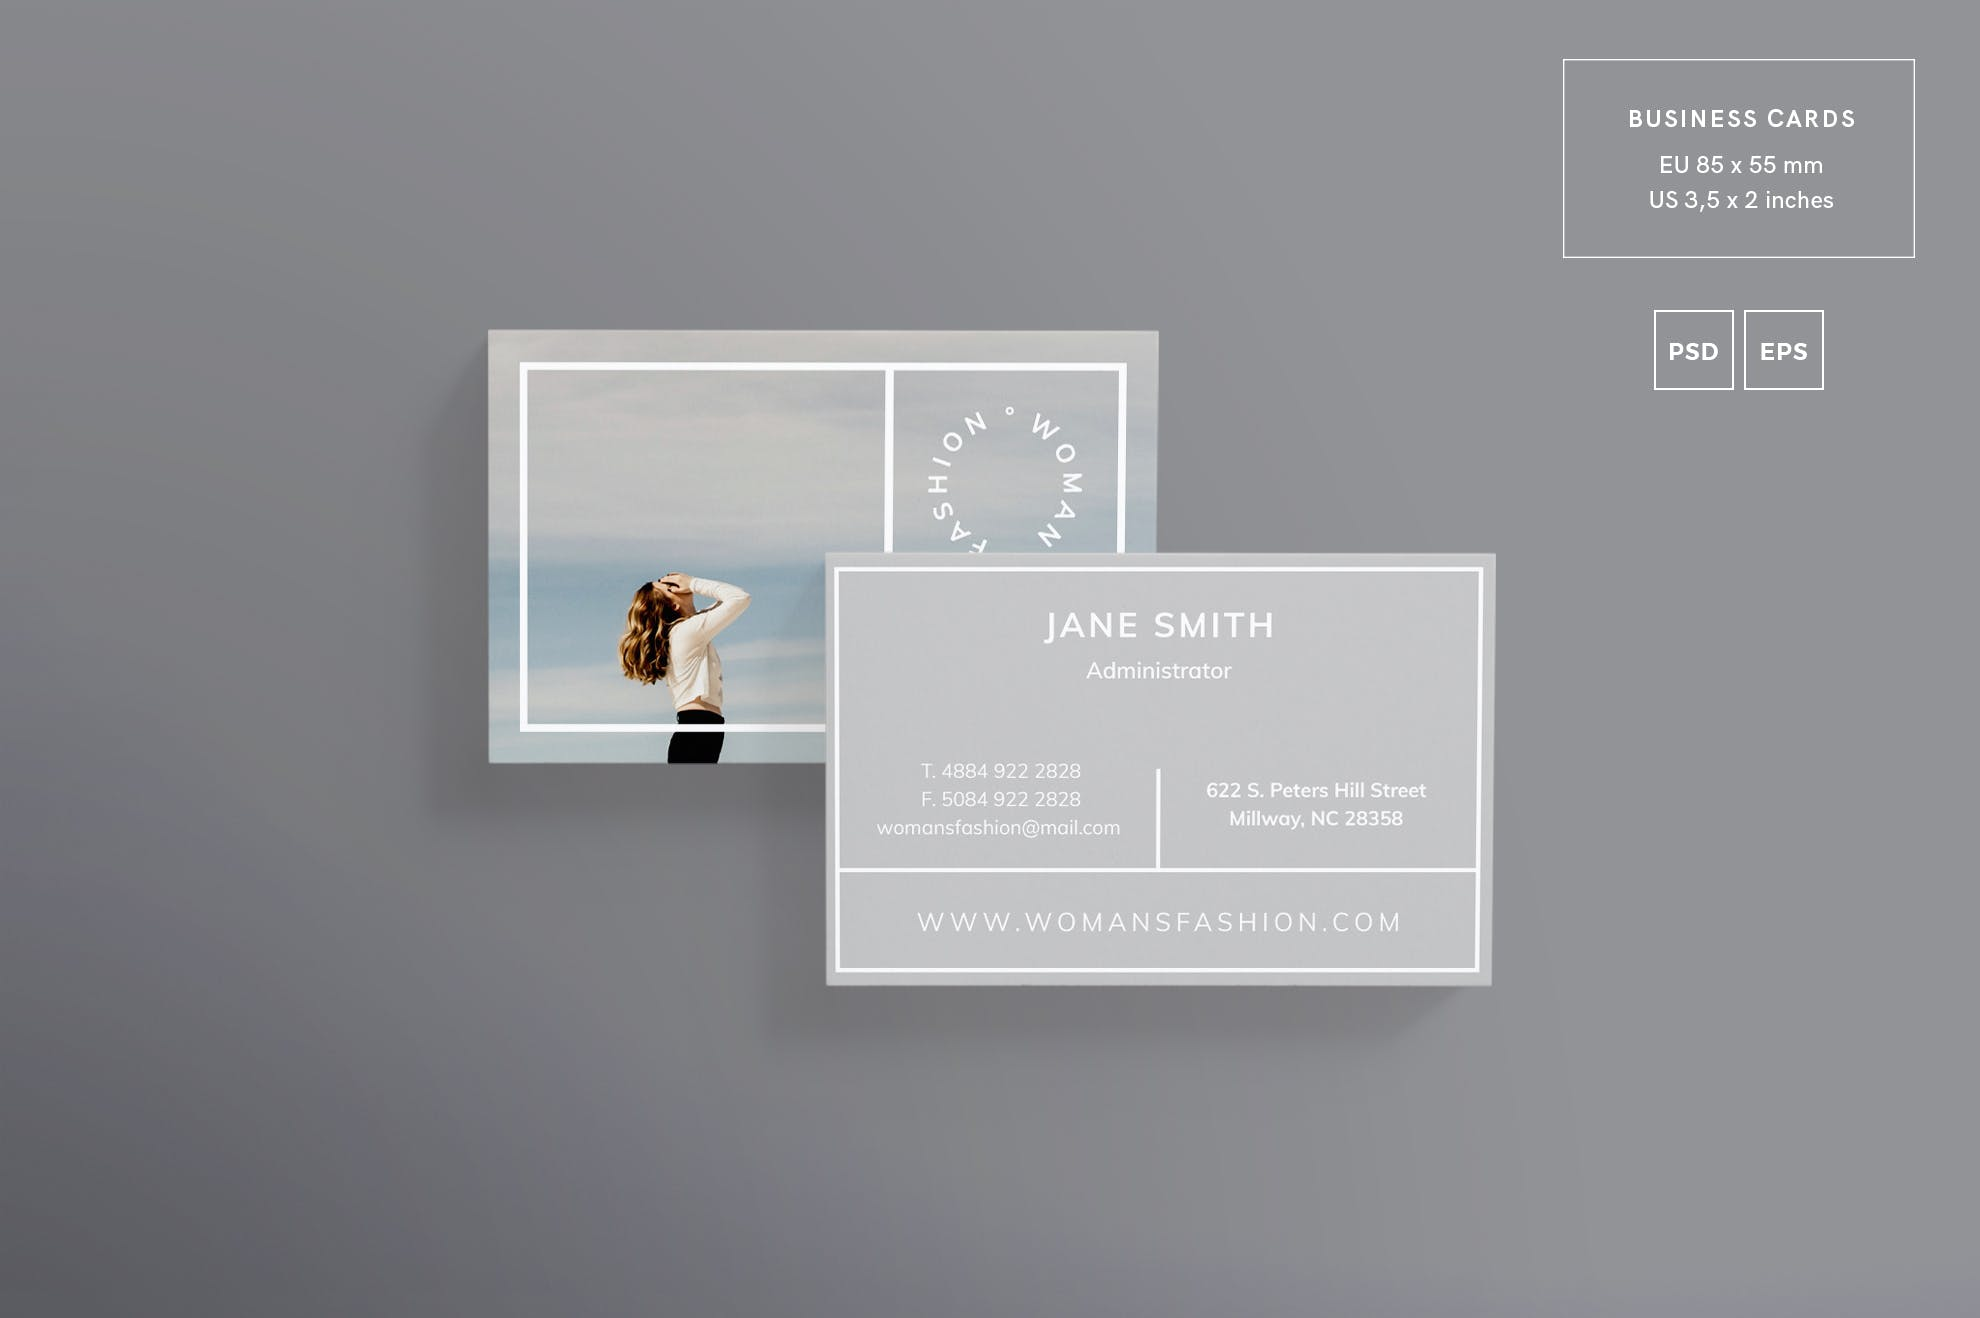 女性时尚名片模板Women Fashion Business Card Template